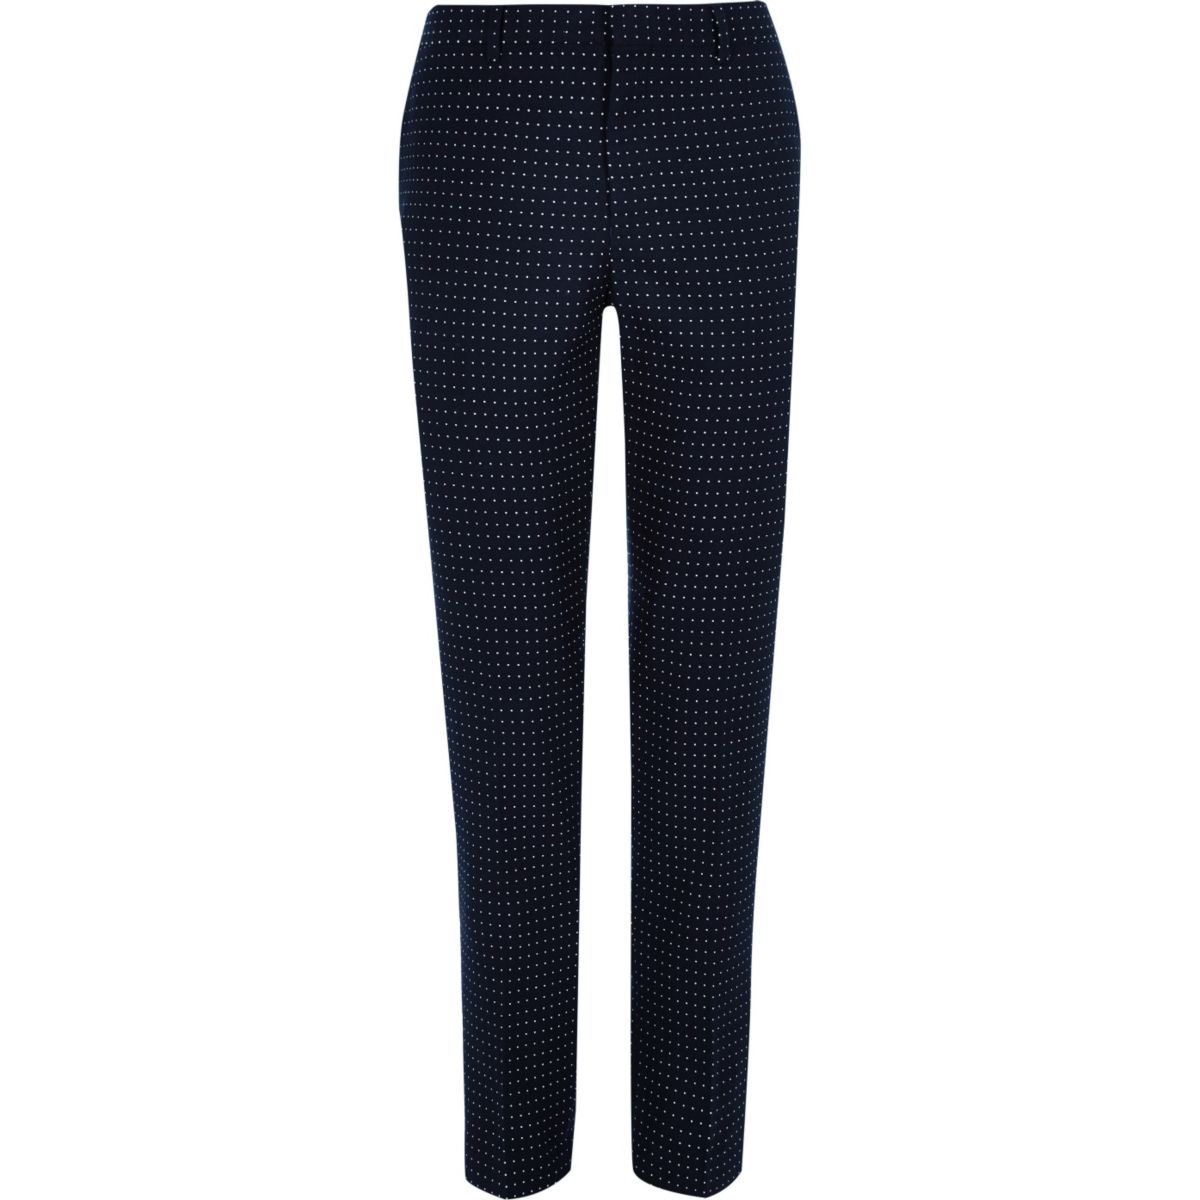 Navy suit: Women's Casual & Dress Pants | getdangero.ga Online Return Instore · Find A Store Near You · New Arrivals Daily · Style Since